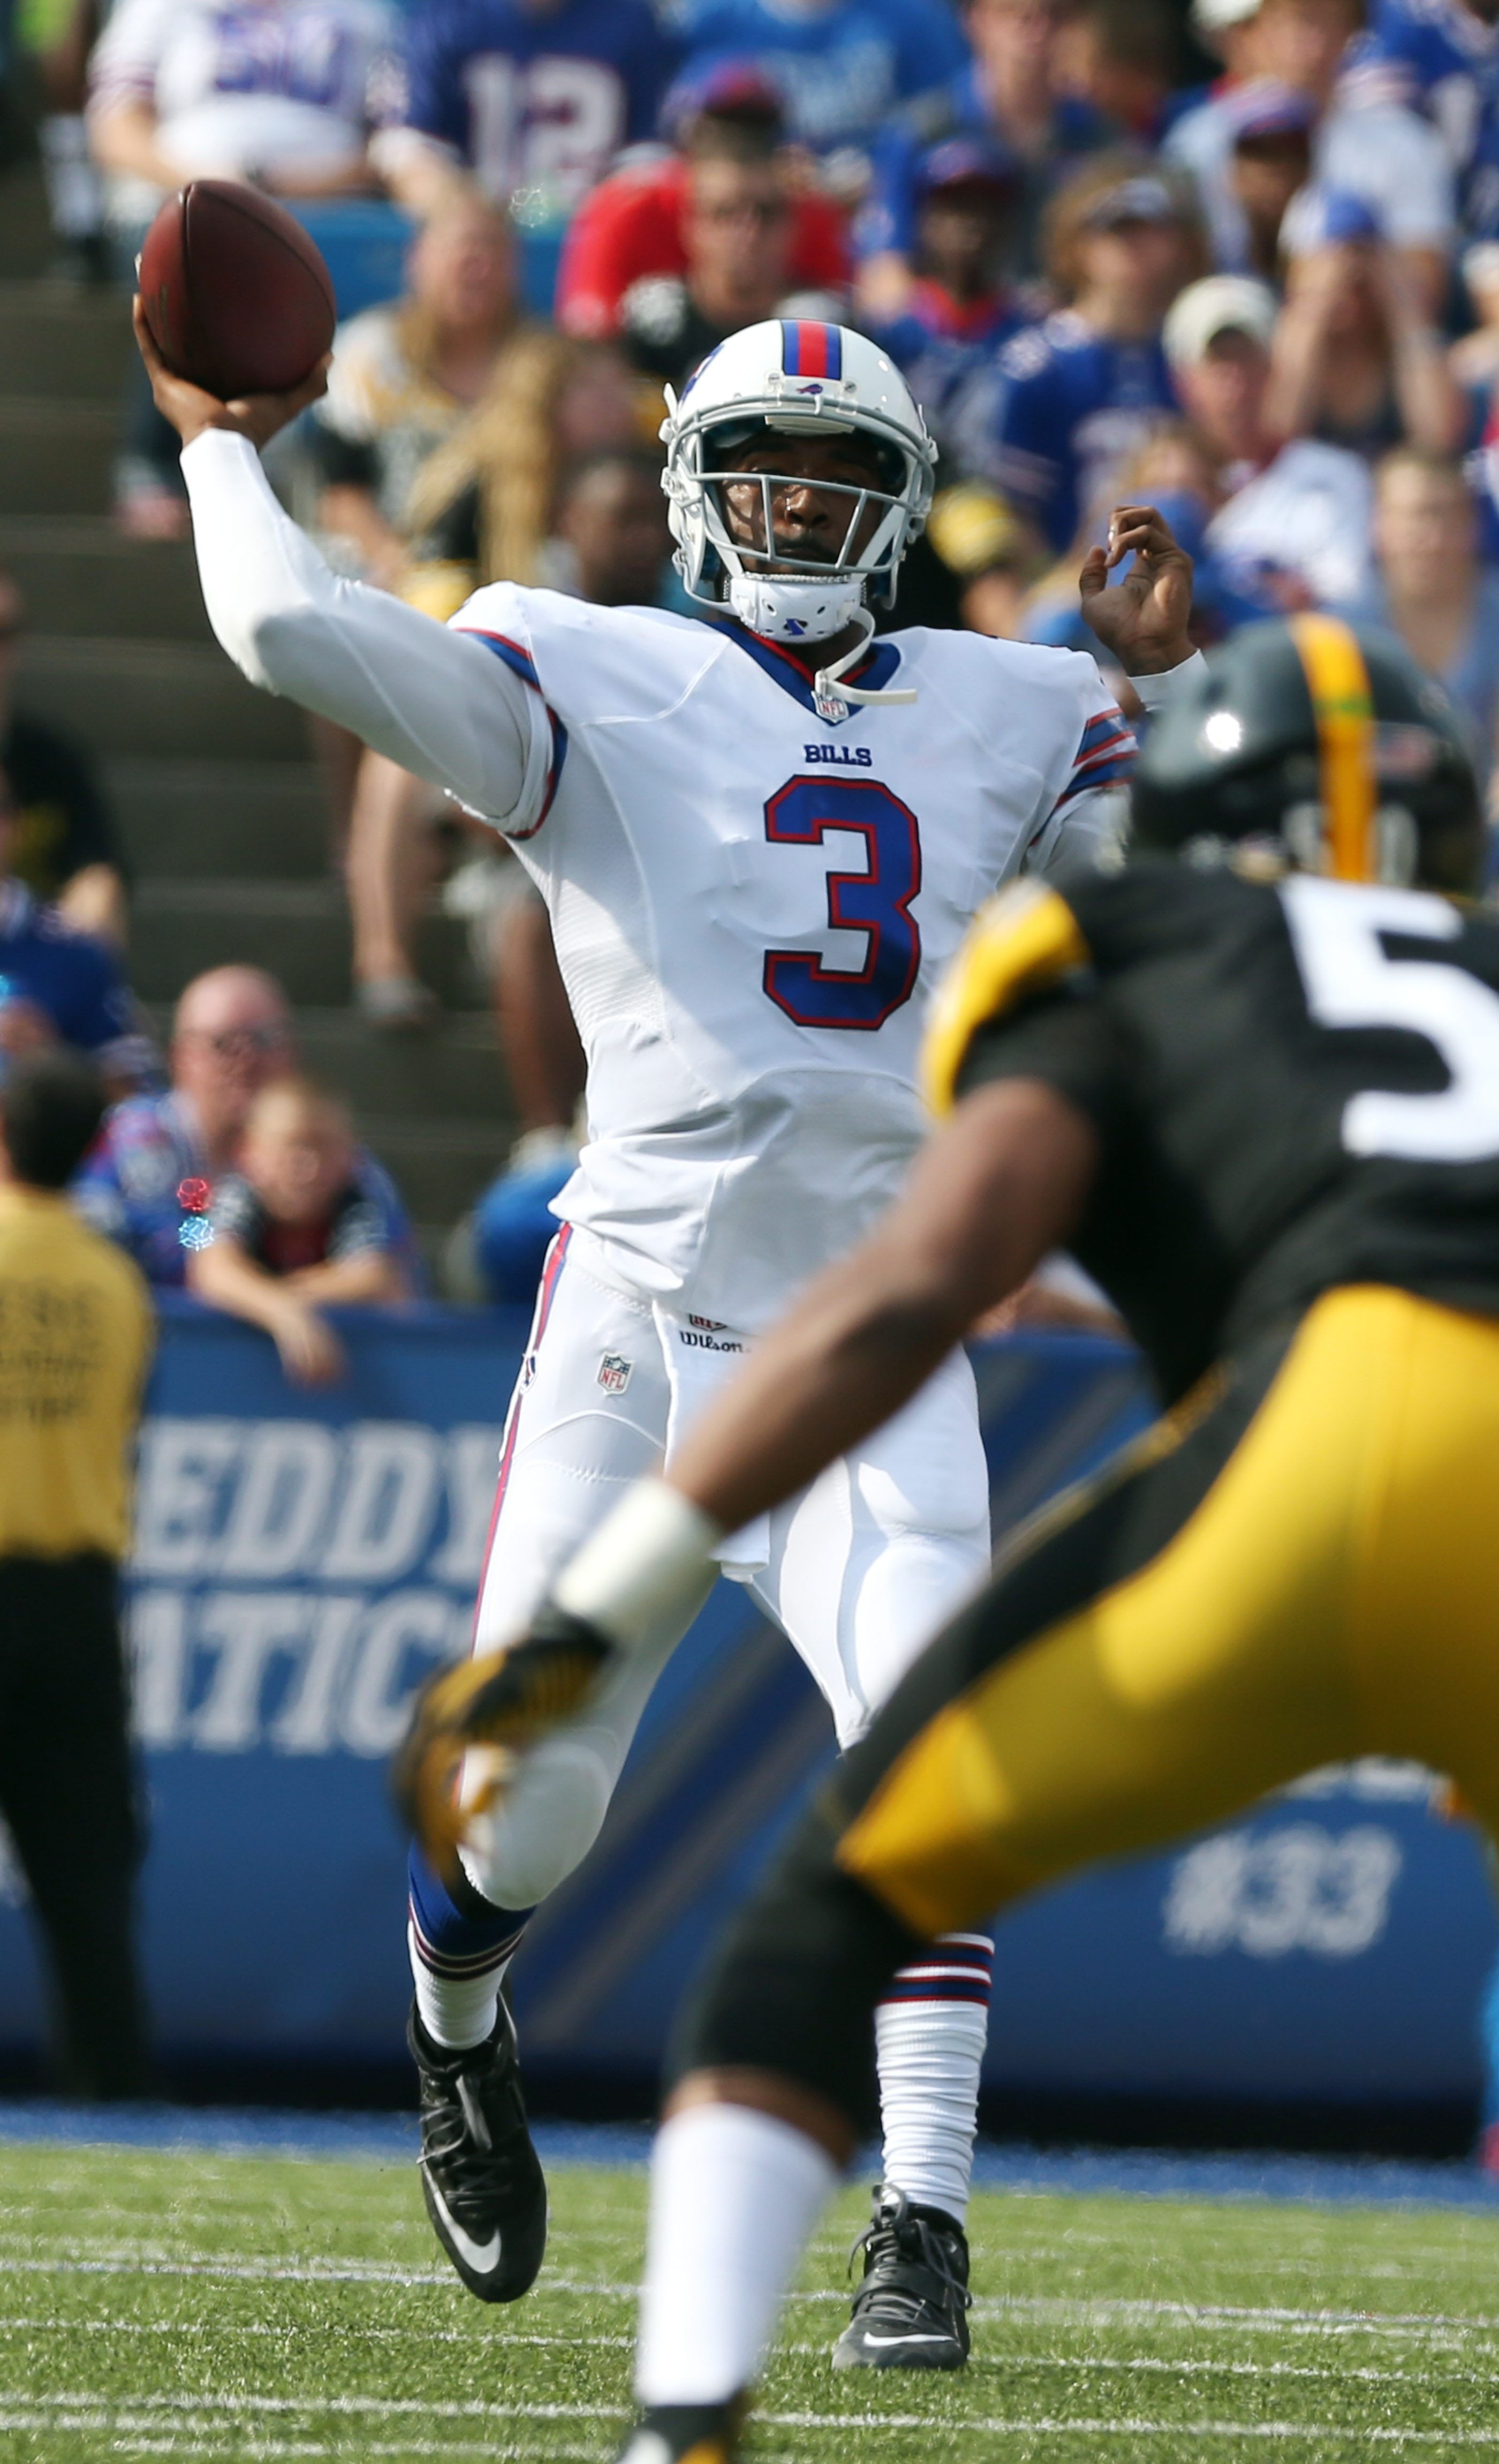 With the release of Matt Cassel, EJ Manuel is the only quarterback on the Bills' roster behind Tyrod Taylor.